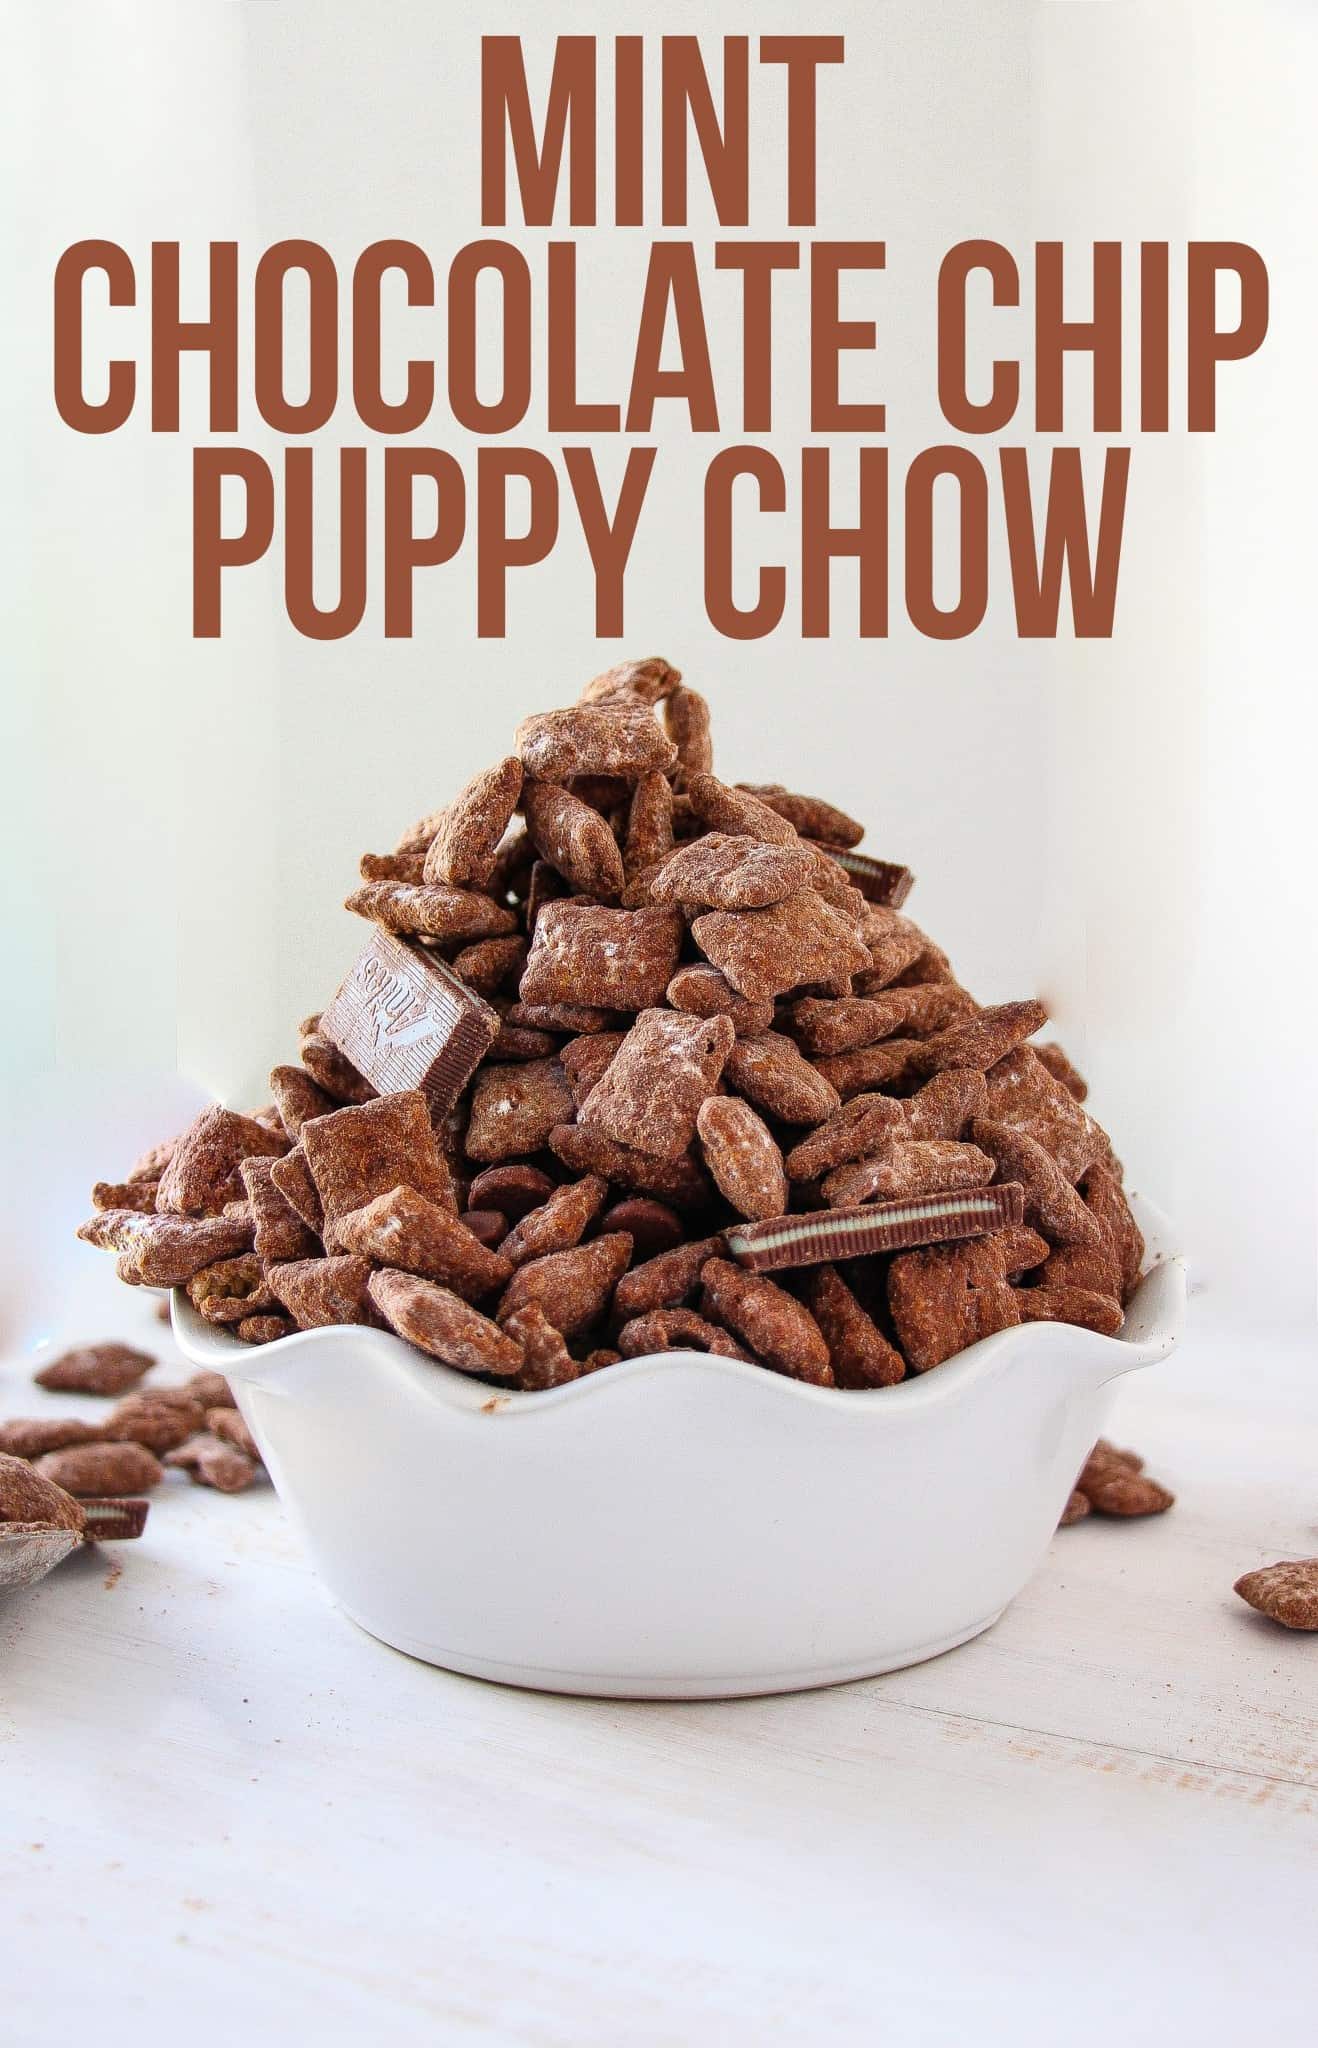 mint-chocolate-chip-puppy-chow-2 copy